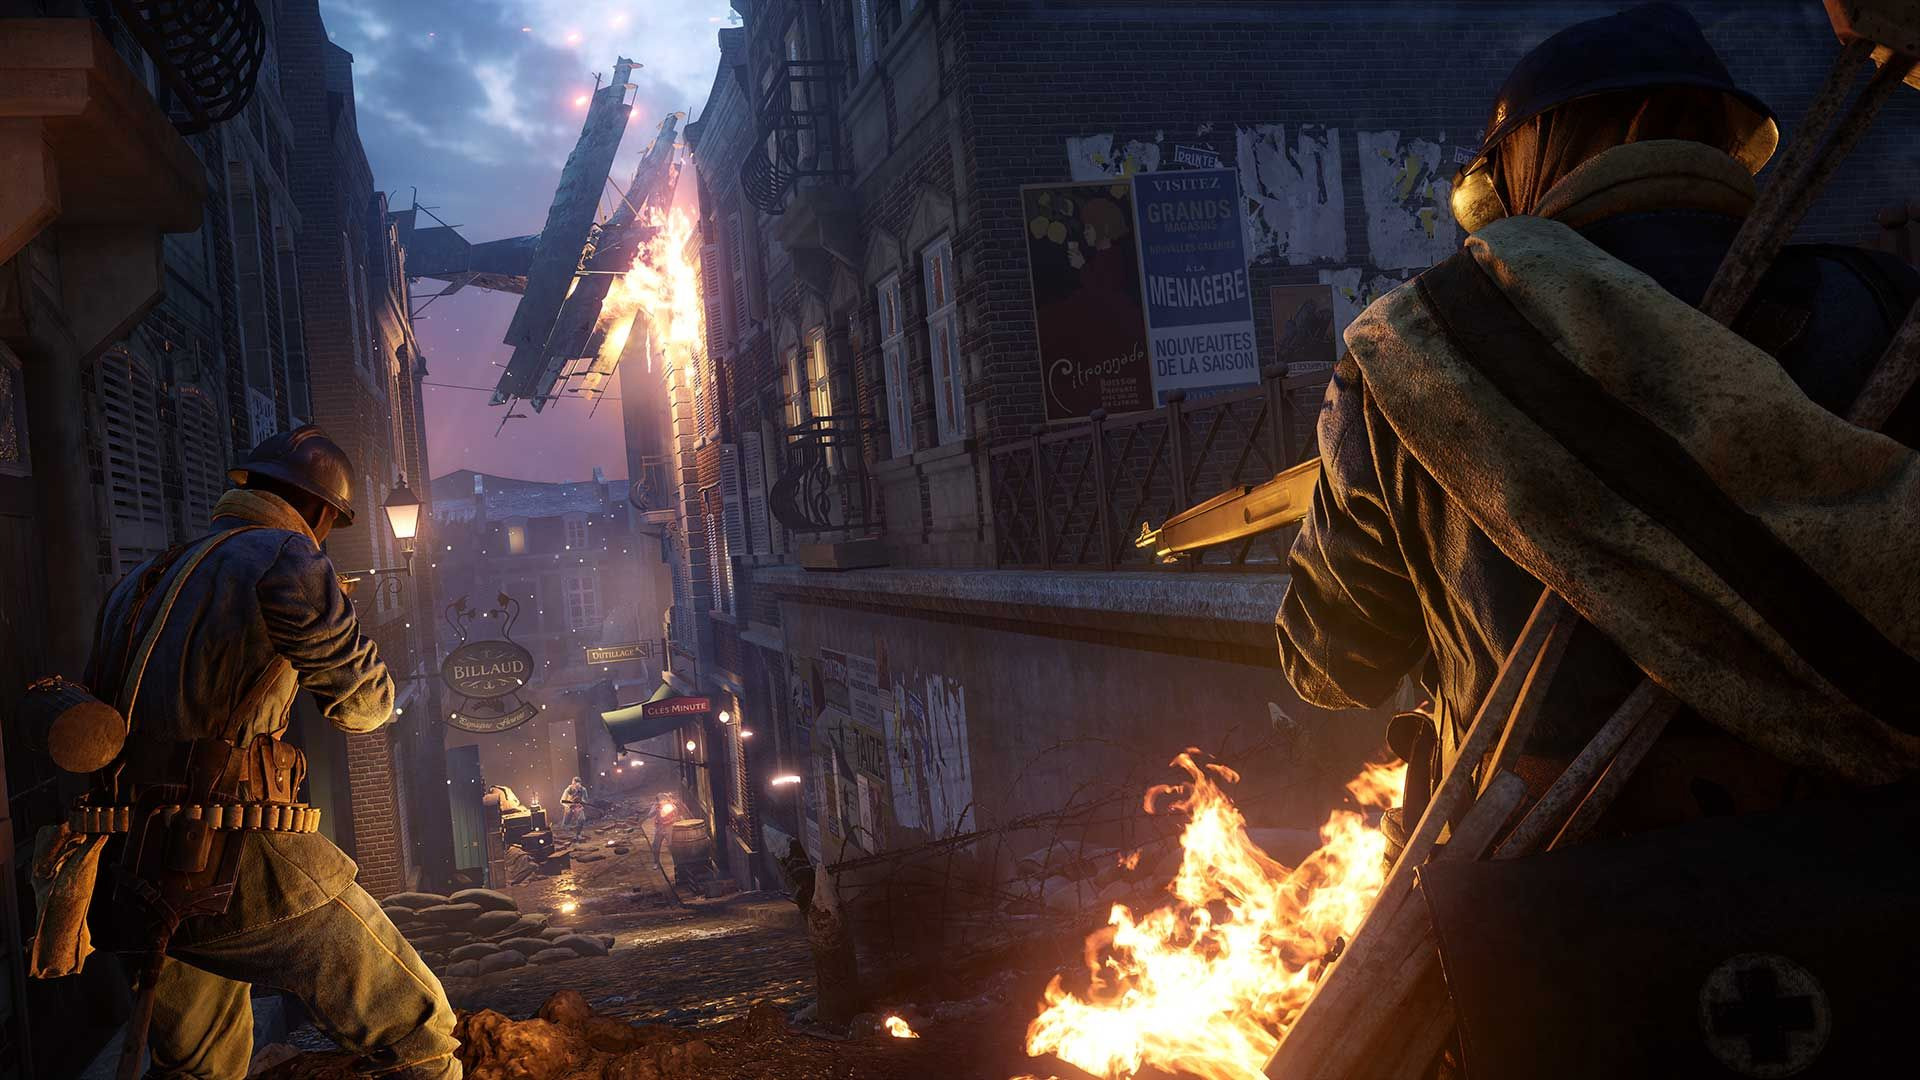 The Battlefield 1 Premium Pass is free to claim and keep right now screenshot